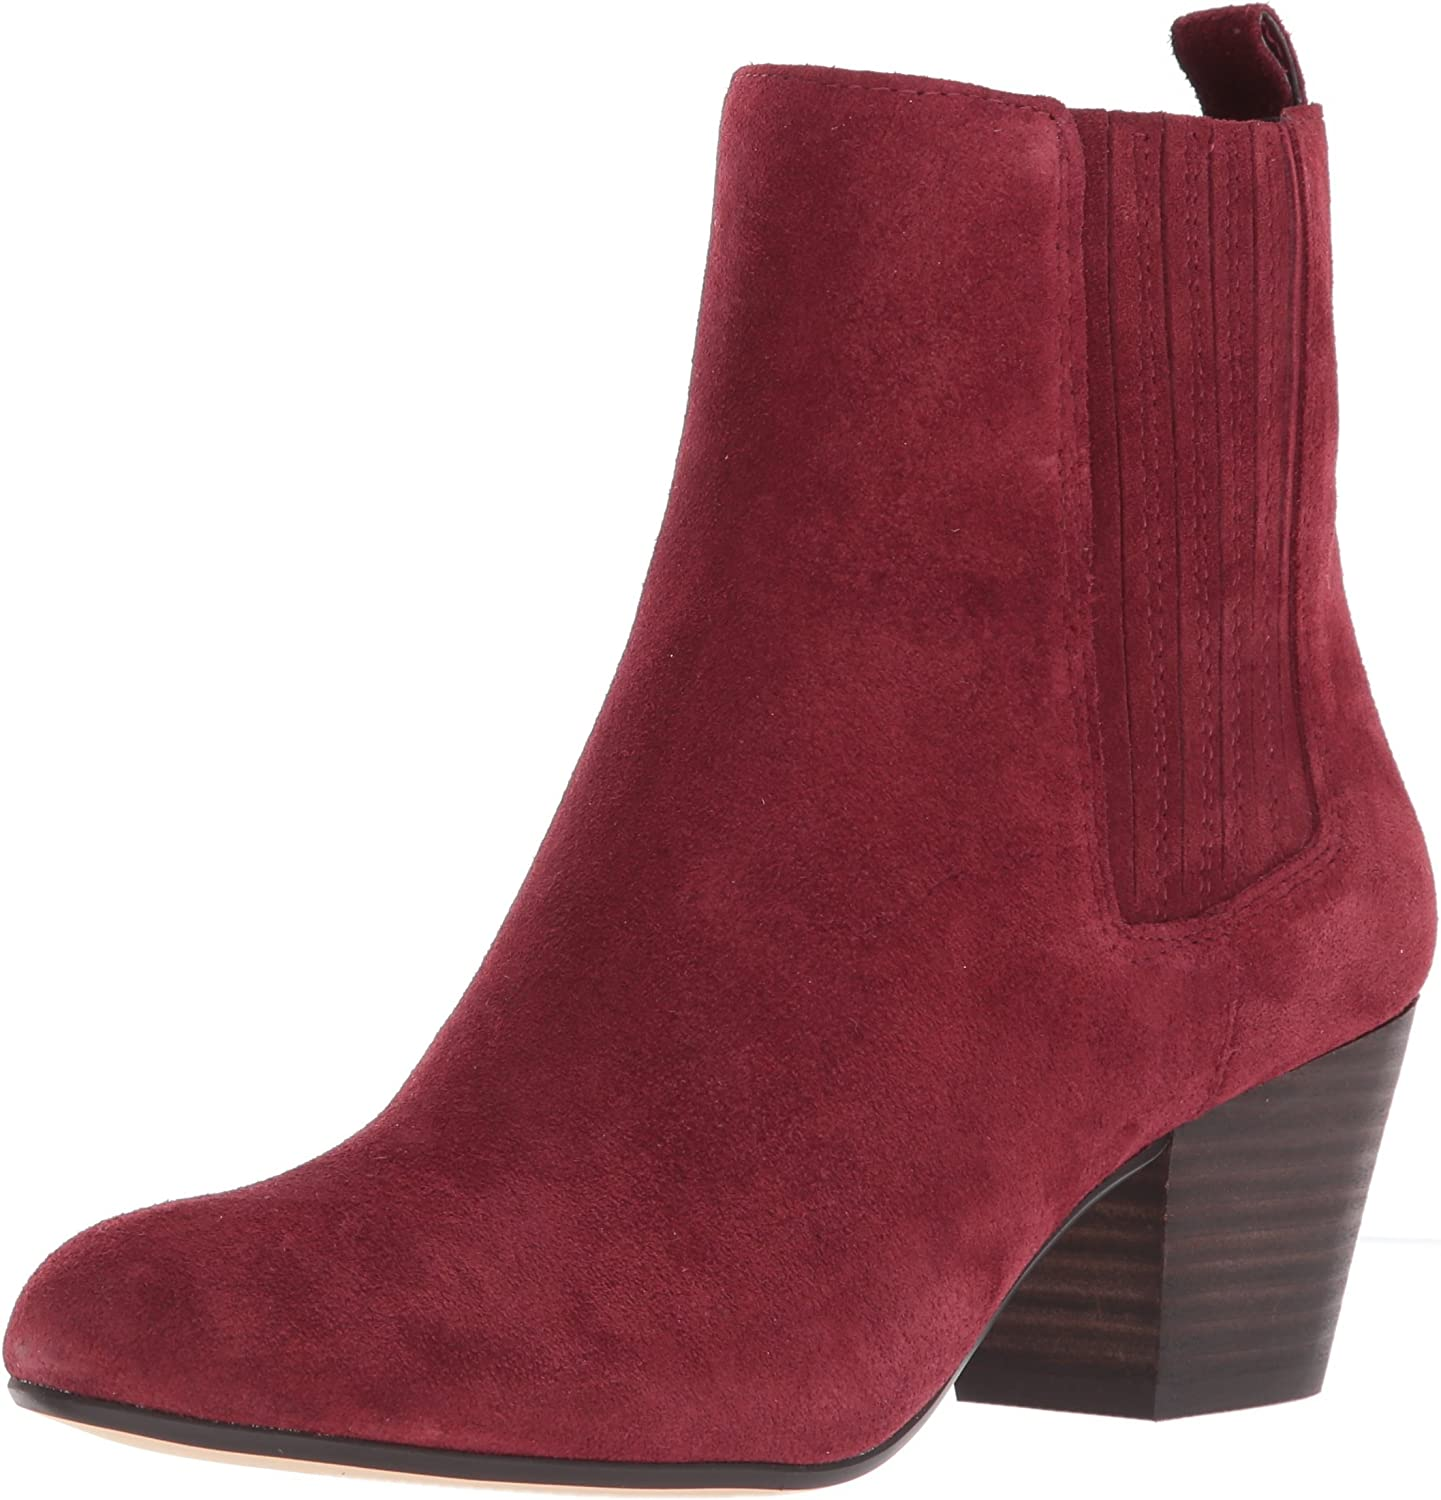 Nine West Women's Haldi Suede